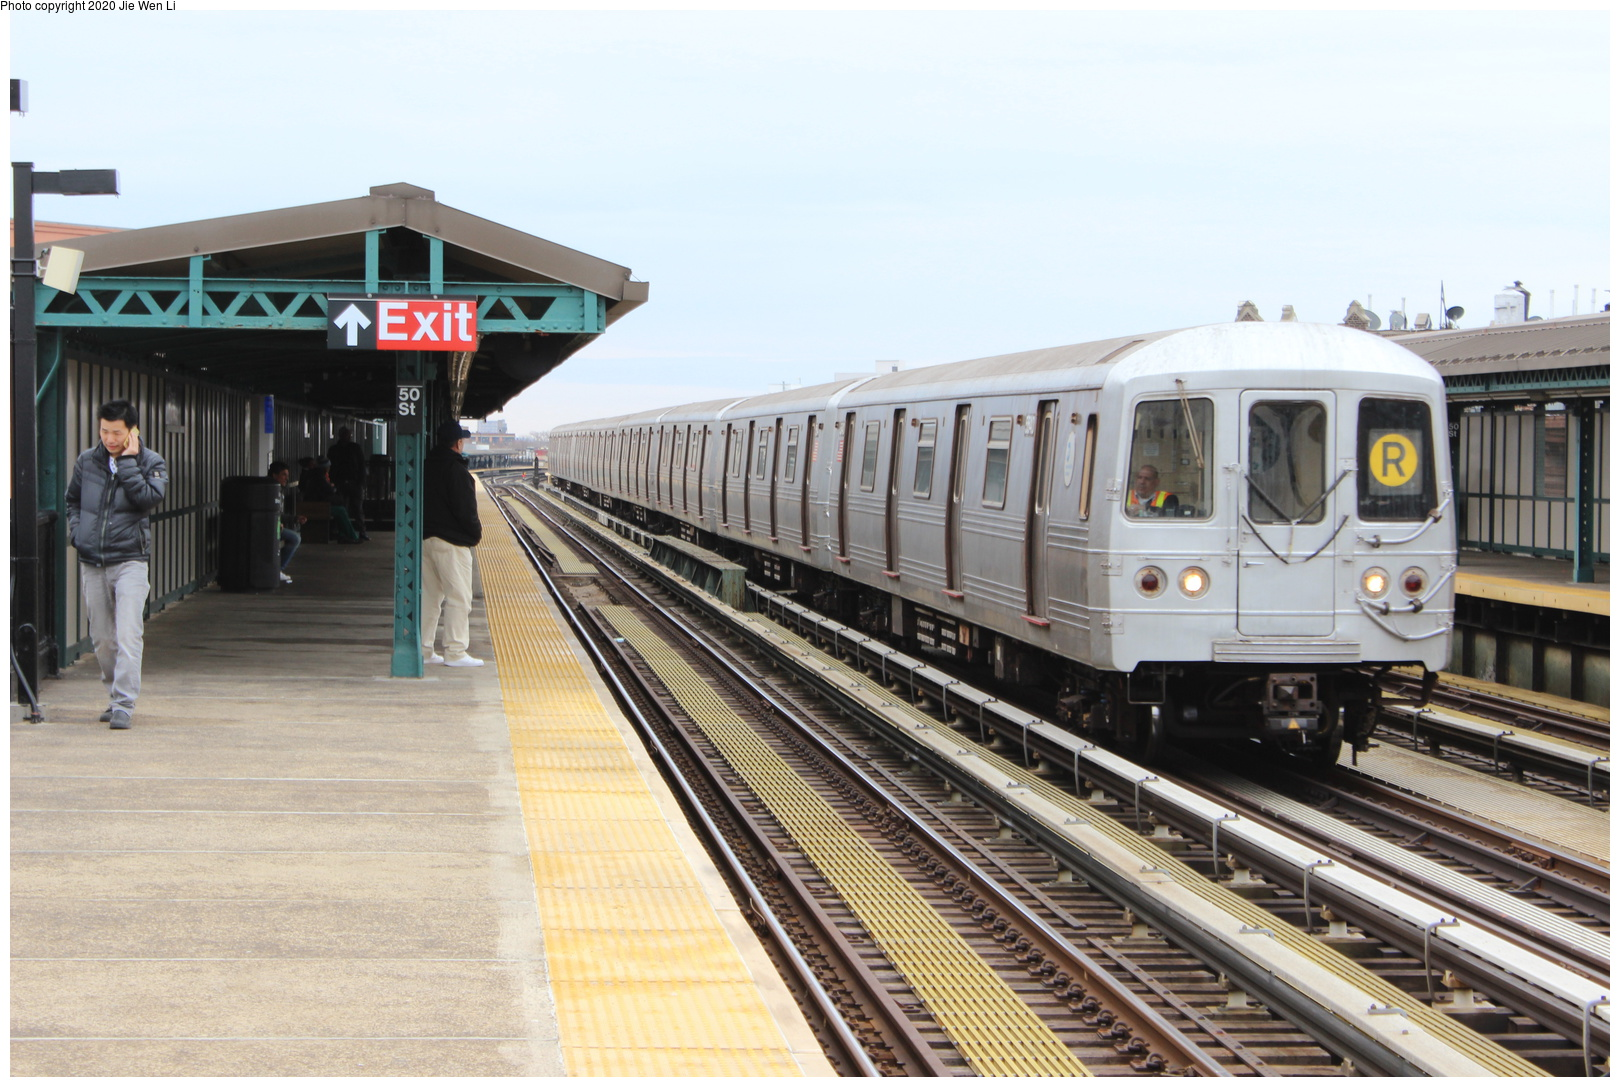 (188k, 1044x694)<br><b>Country:</b> United States<br><b>City:</b> New York<br><b>System:</b> New York City Transit<br><b>Line:</b> IRT Flushing Line<br><b>Location:</b> 46th Street/Bliss Street <br><b>Car:</b> Low-V Worlds Fair  <br><b>Photo by:</b> Joel Shanus<br><b>Viewed (this week/total):</b> 4 / 1841